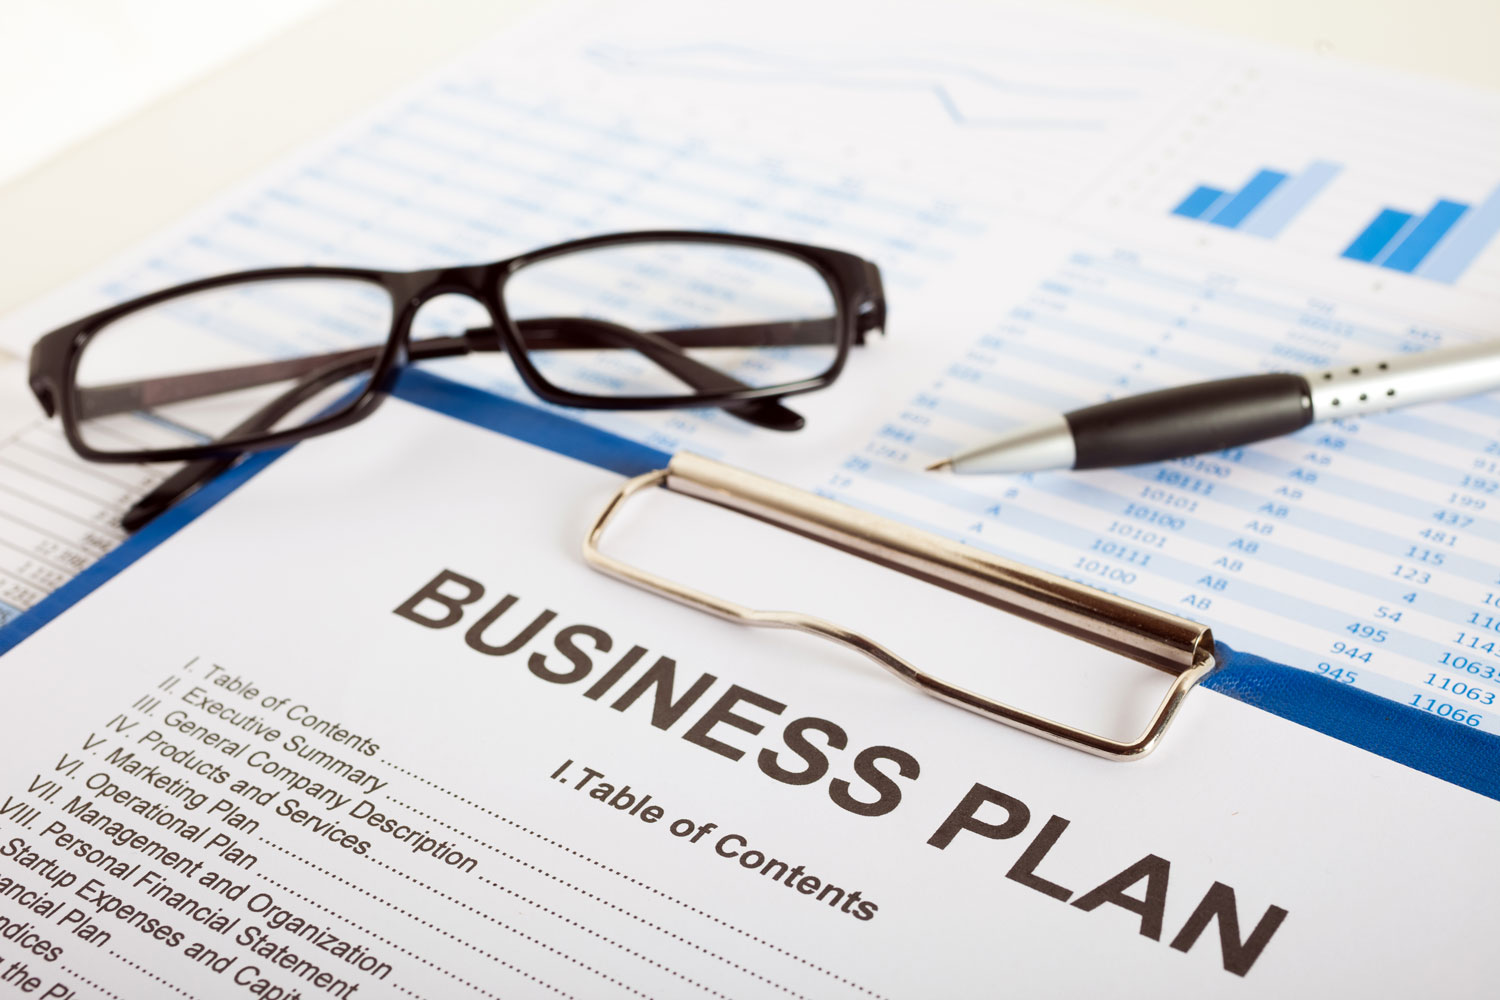 Business Plan for new business